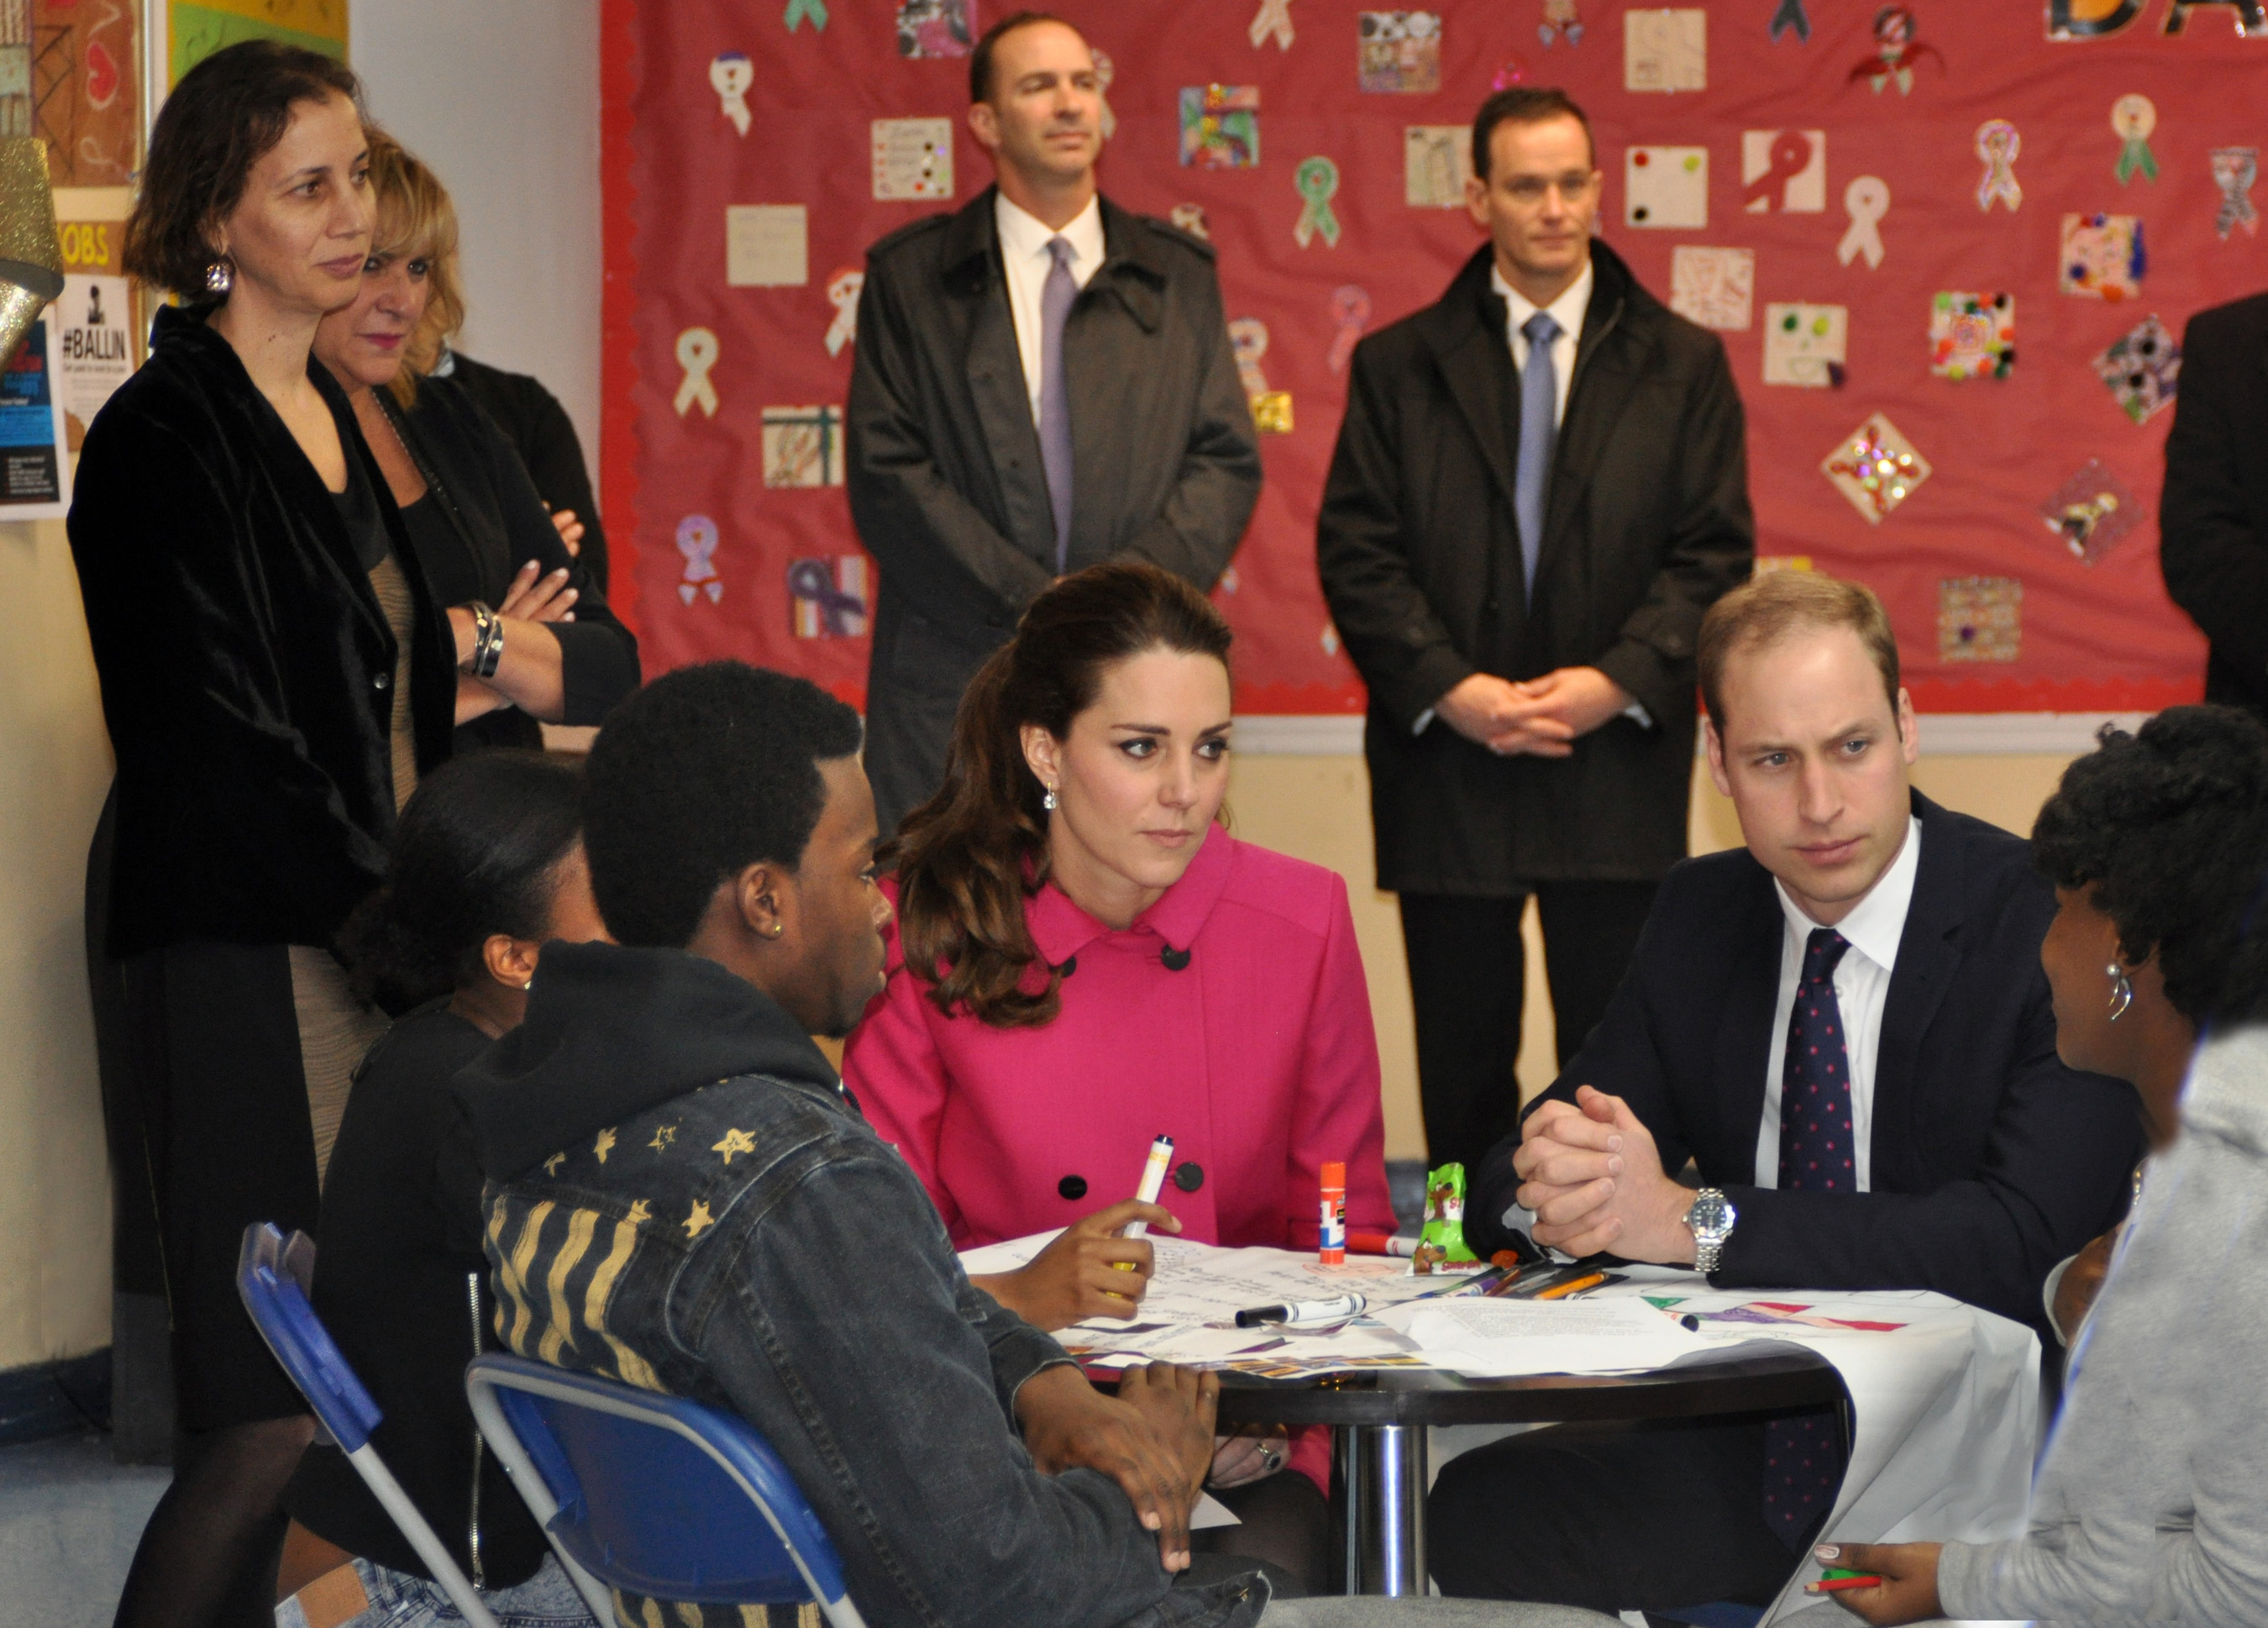 The Duke and Duchess spent time speaking with youth from The Door and The CityKids Foundation during their visit on Tuesday, December 9, 2014. Photo Credit: Jane Feldman